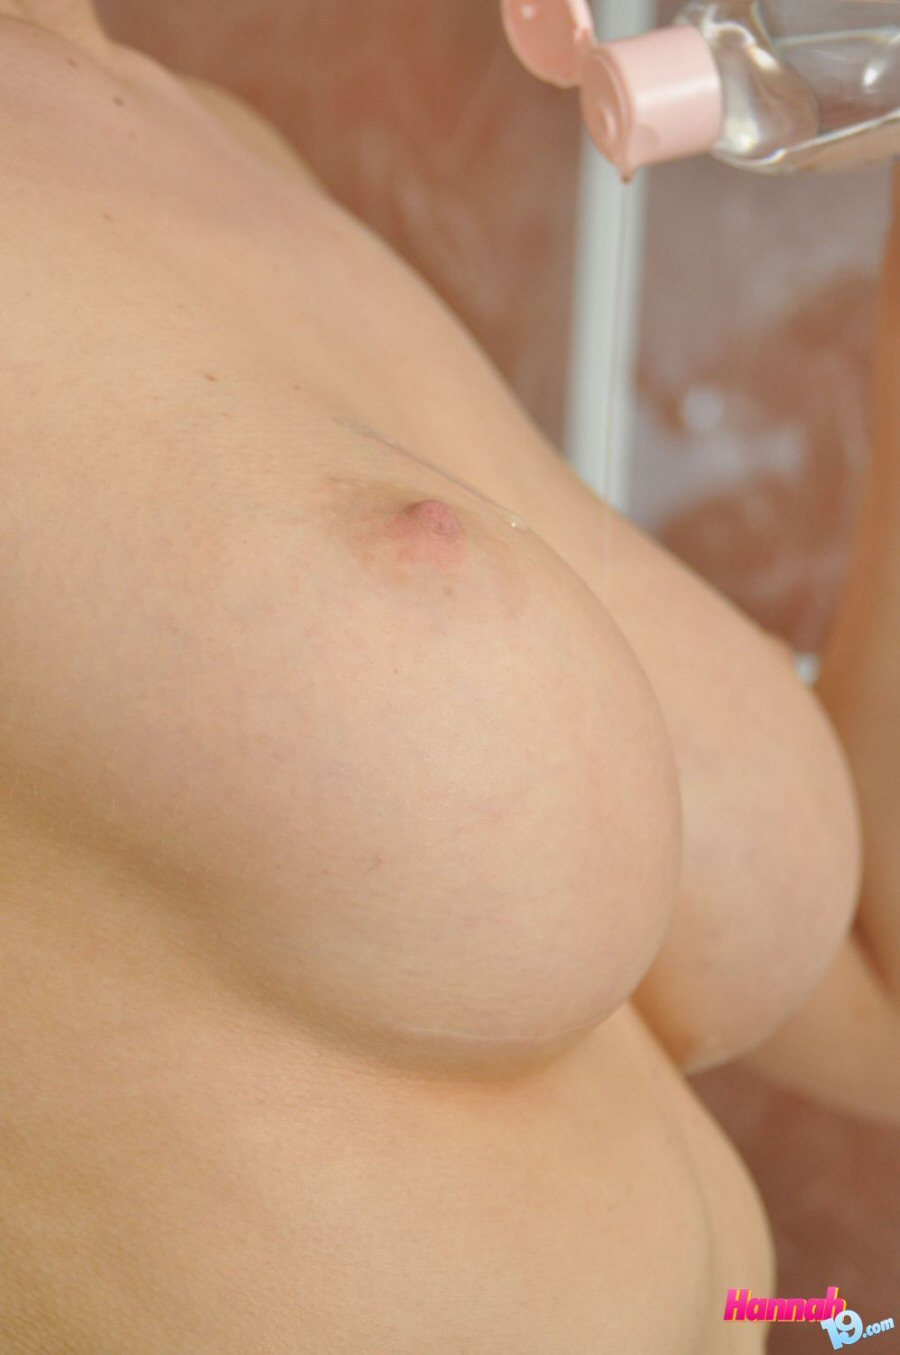 from Blaise hanna montaner showing her tits